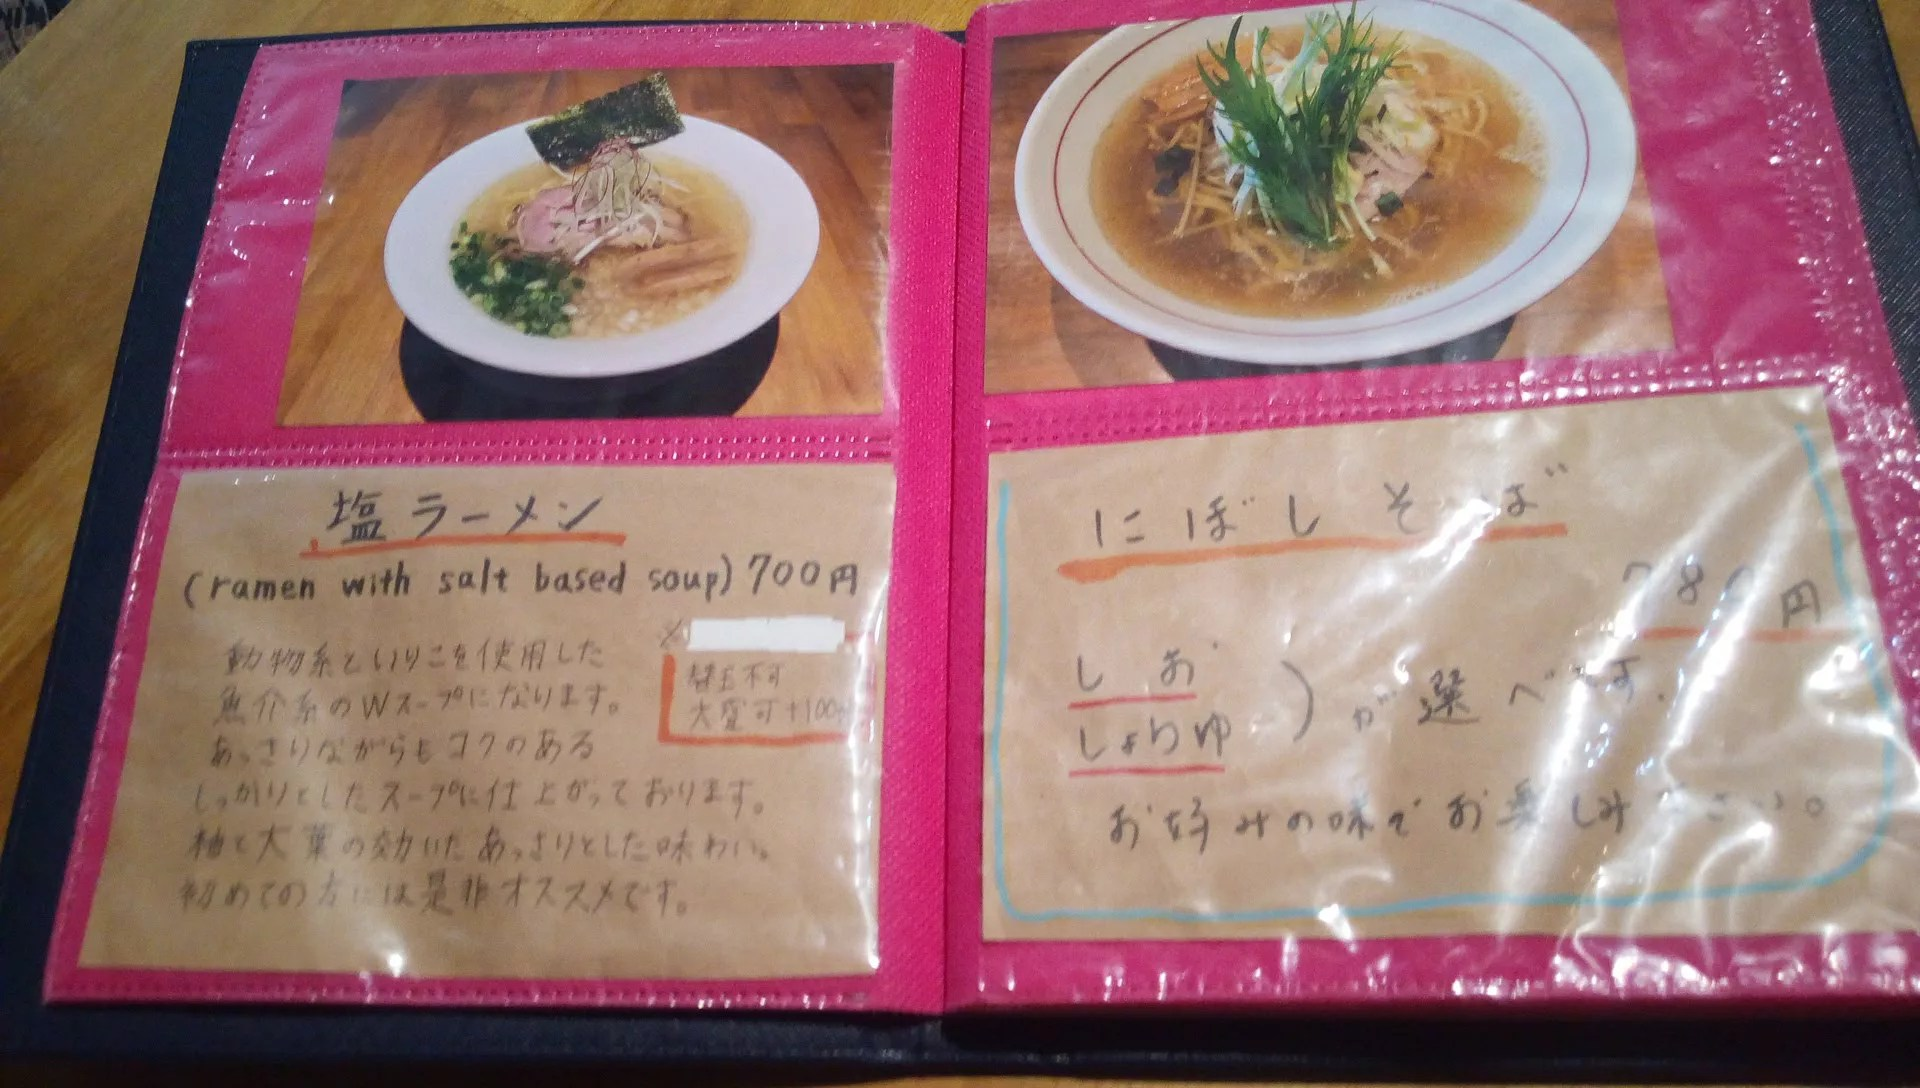 The menu of Menya-Gochi 1